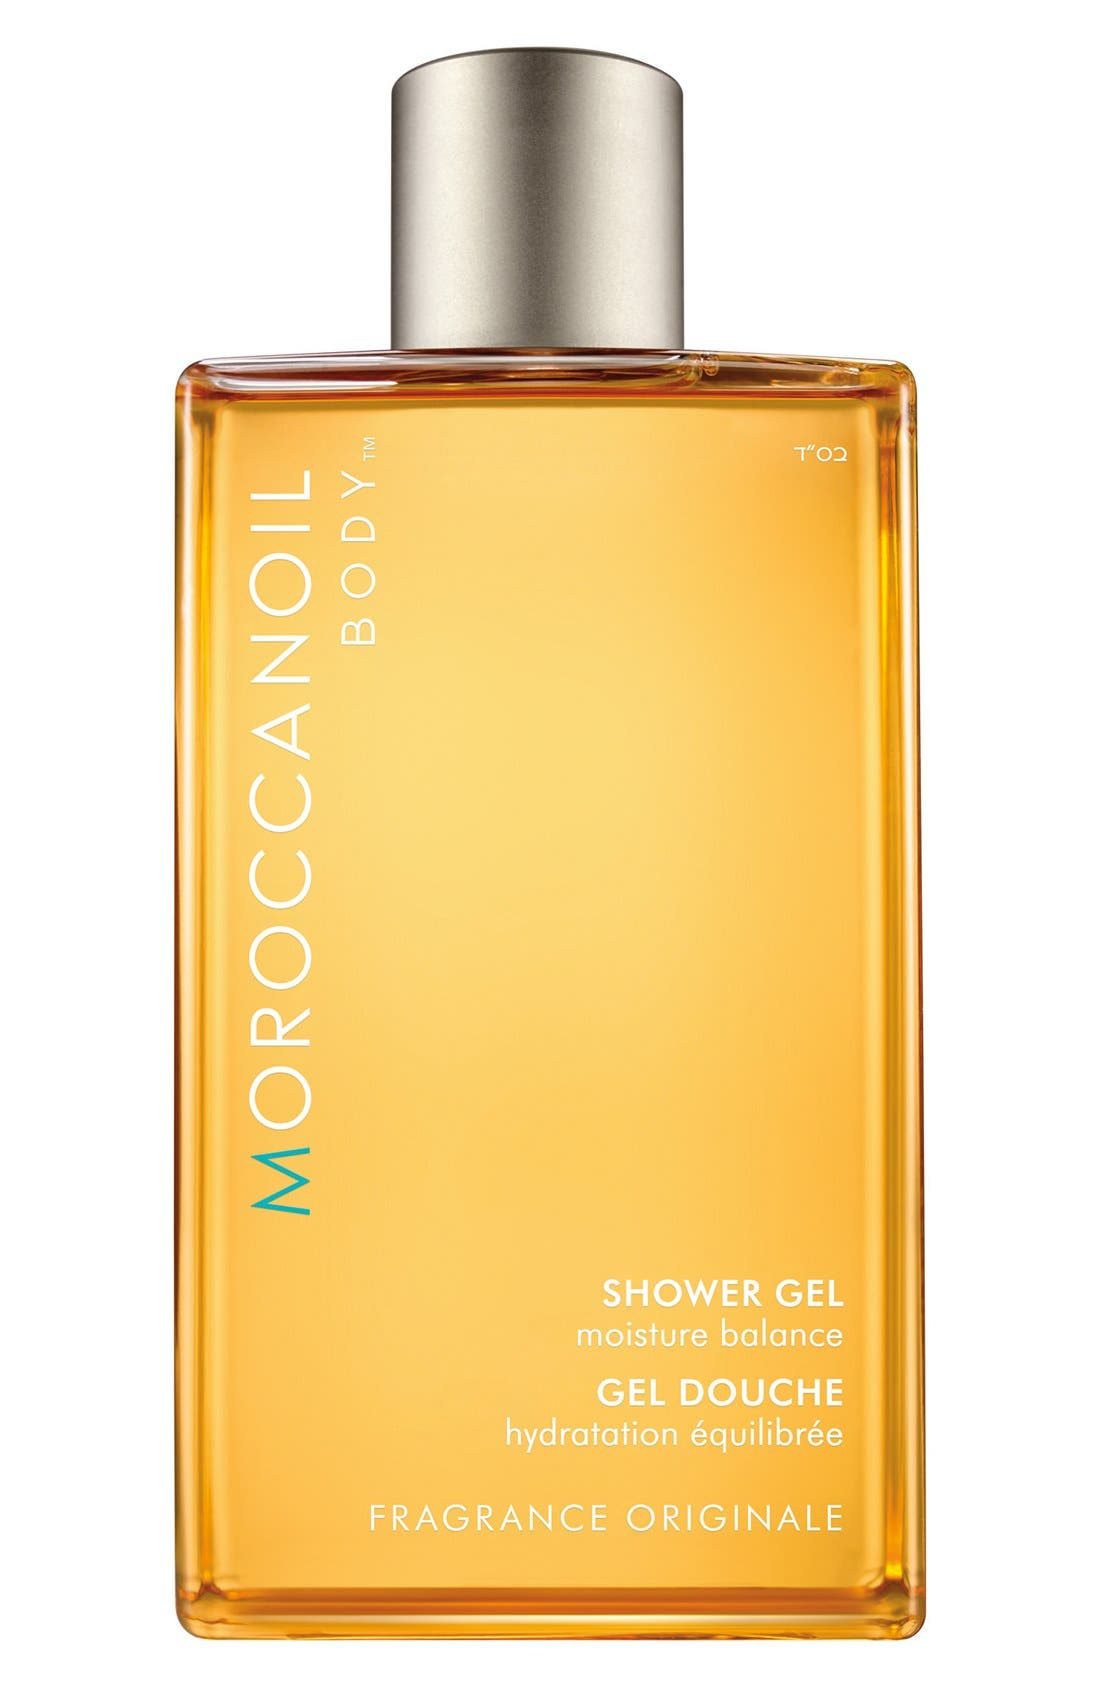 MOROCCANOIL® 'Fragrance Originale' Shower Gel